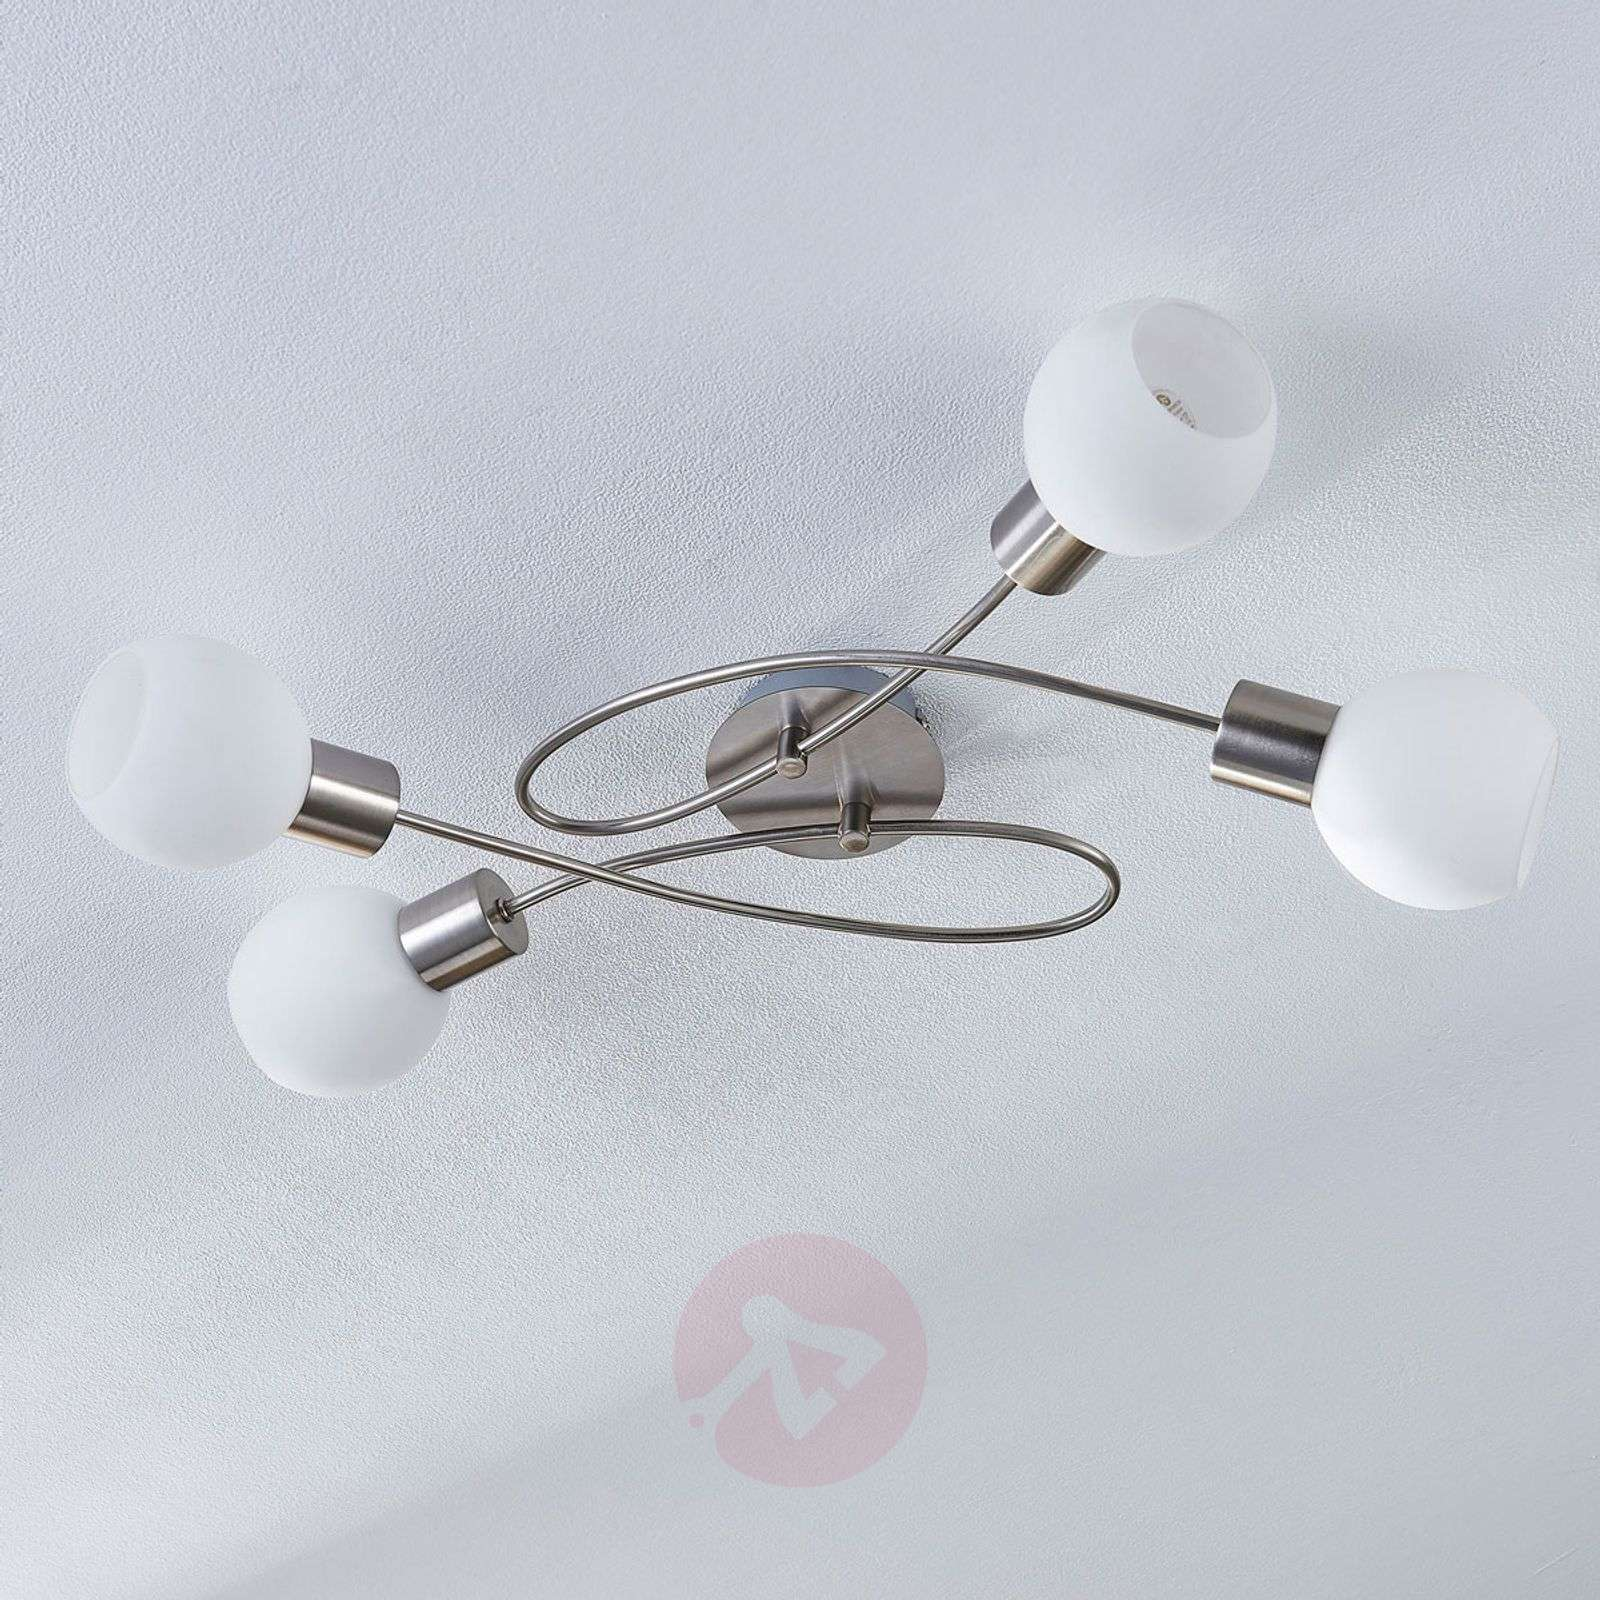 4-bulb LED ceiling light Hailey, nickel-9621040-02